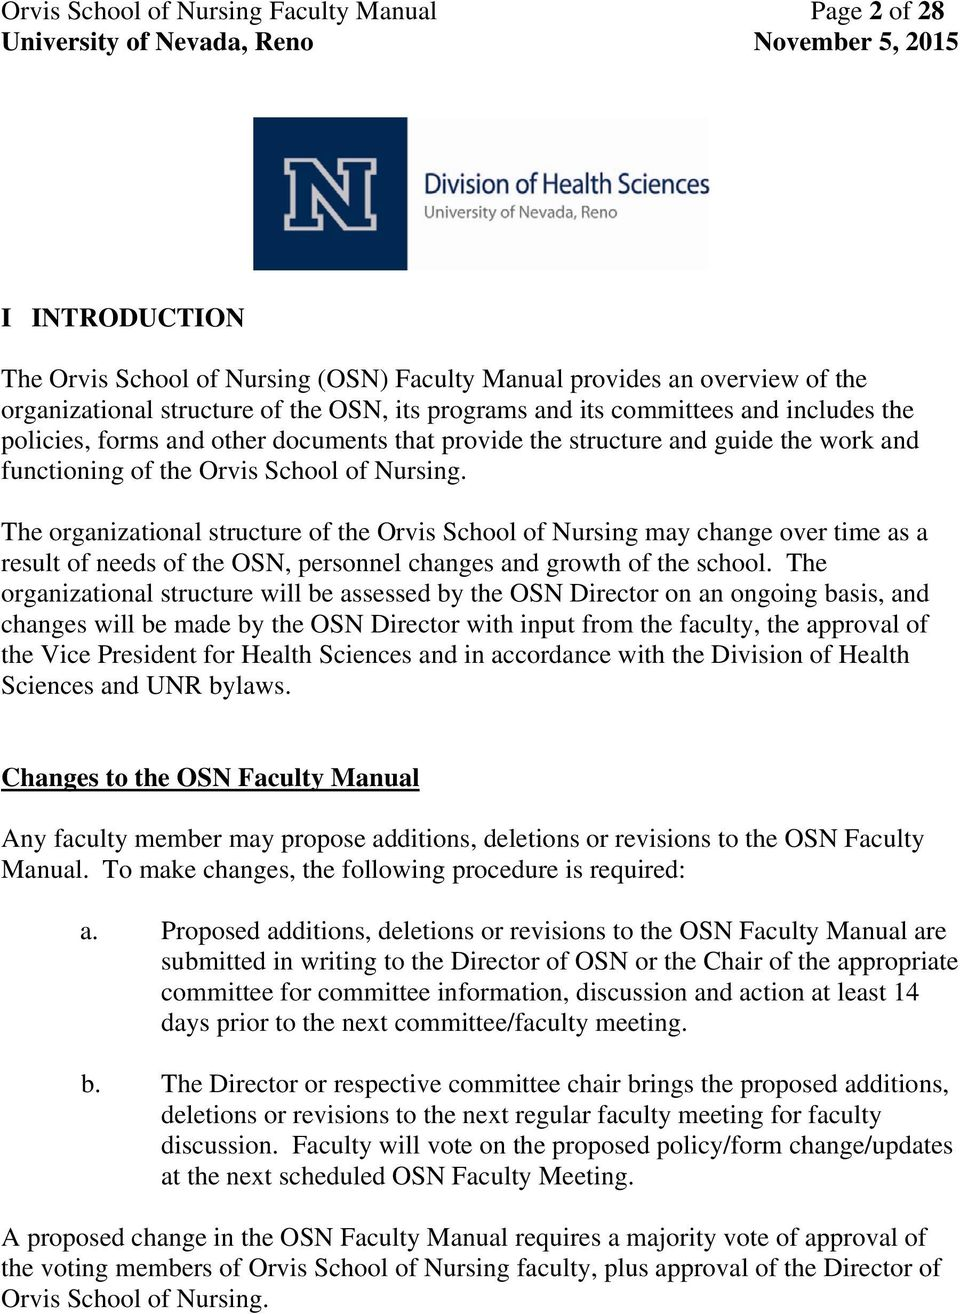 The organizational structure of the Orvis School of Nursing may change over time as a result of needs of the OSN, personnel changes and growth of the school.